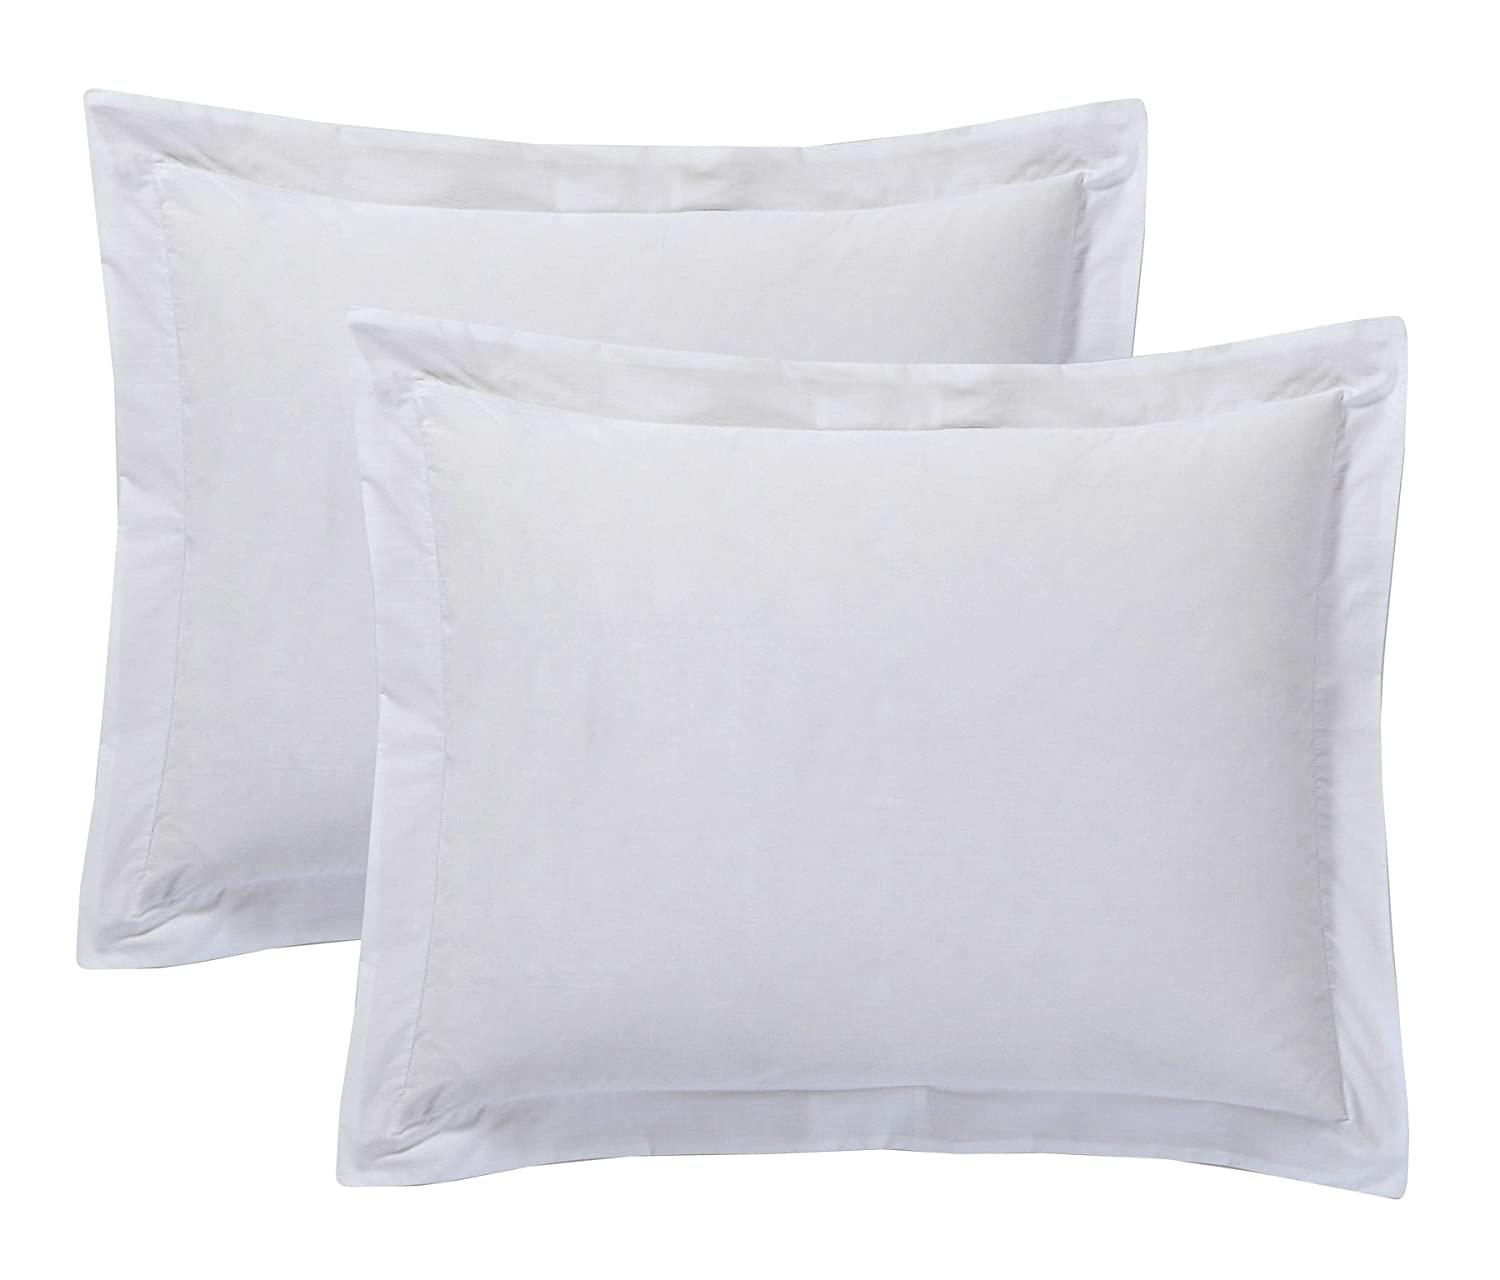 Today's Home Pillow Shams Soft Cotton Blend Tailored Classic Styling, Standard, White (2 Pack)